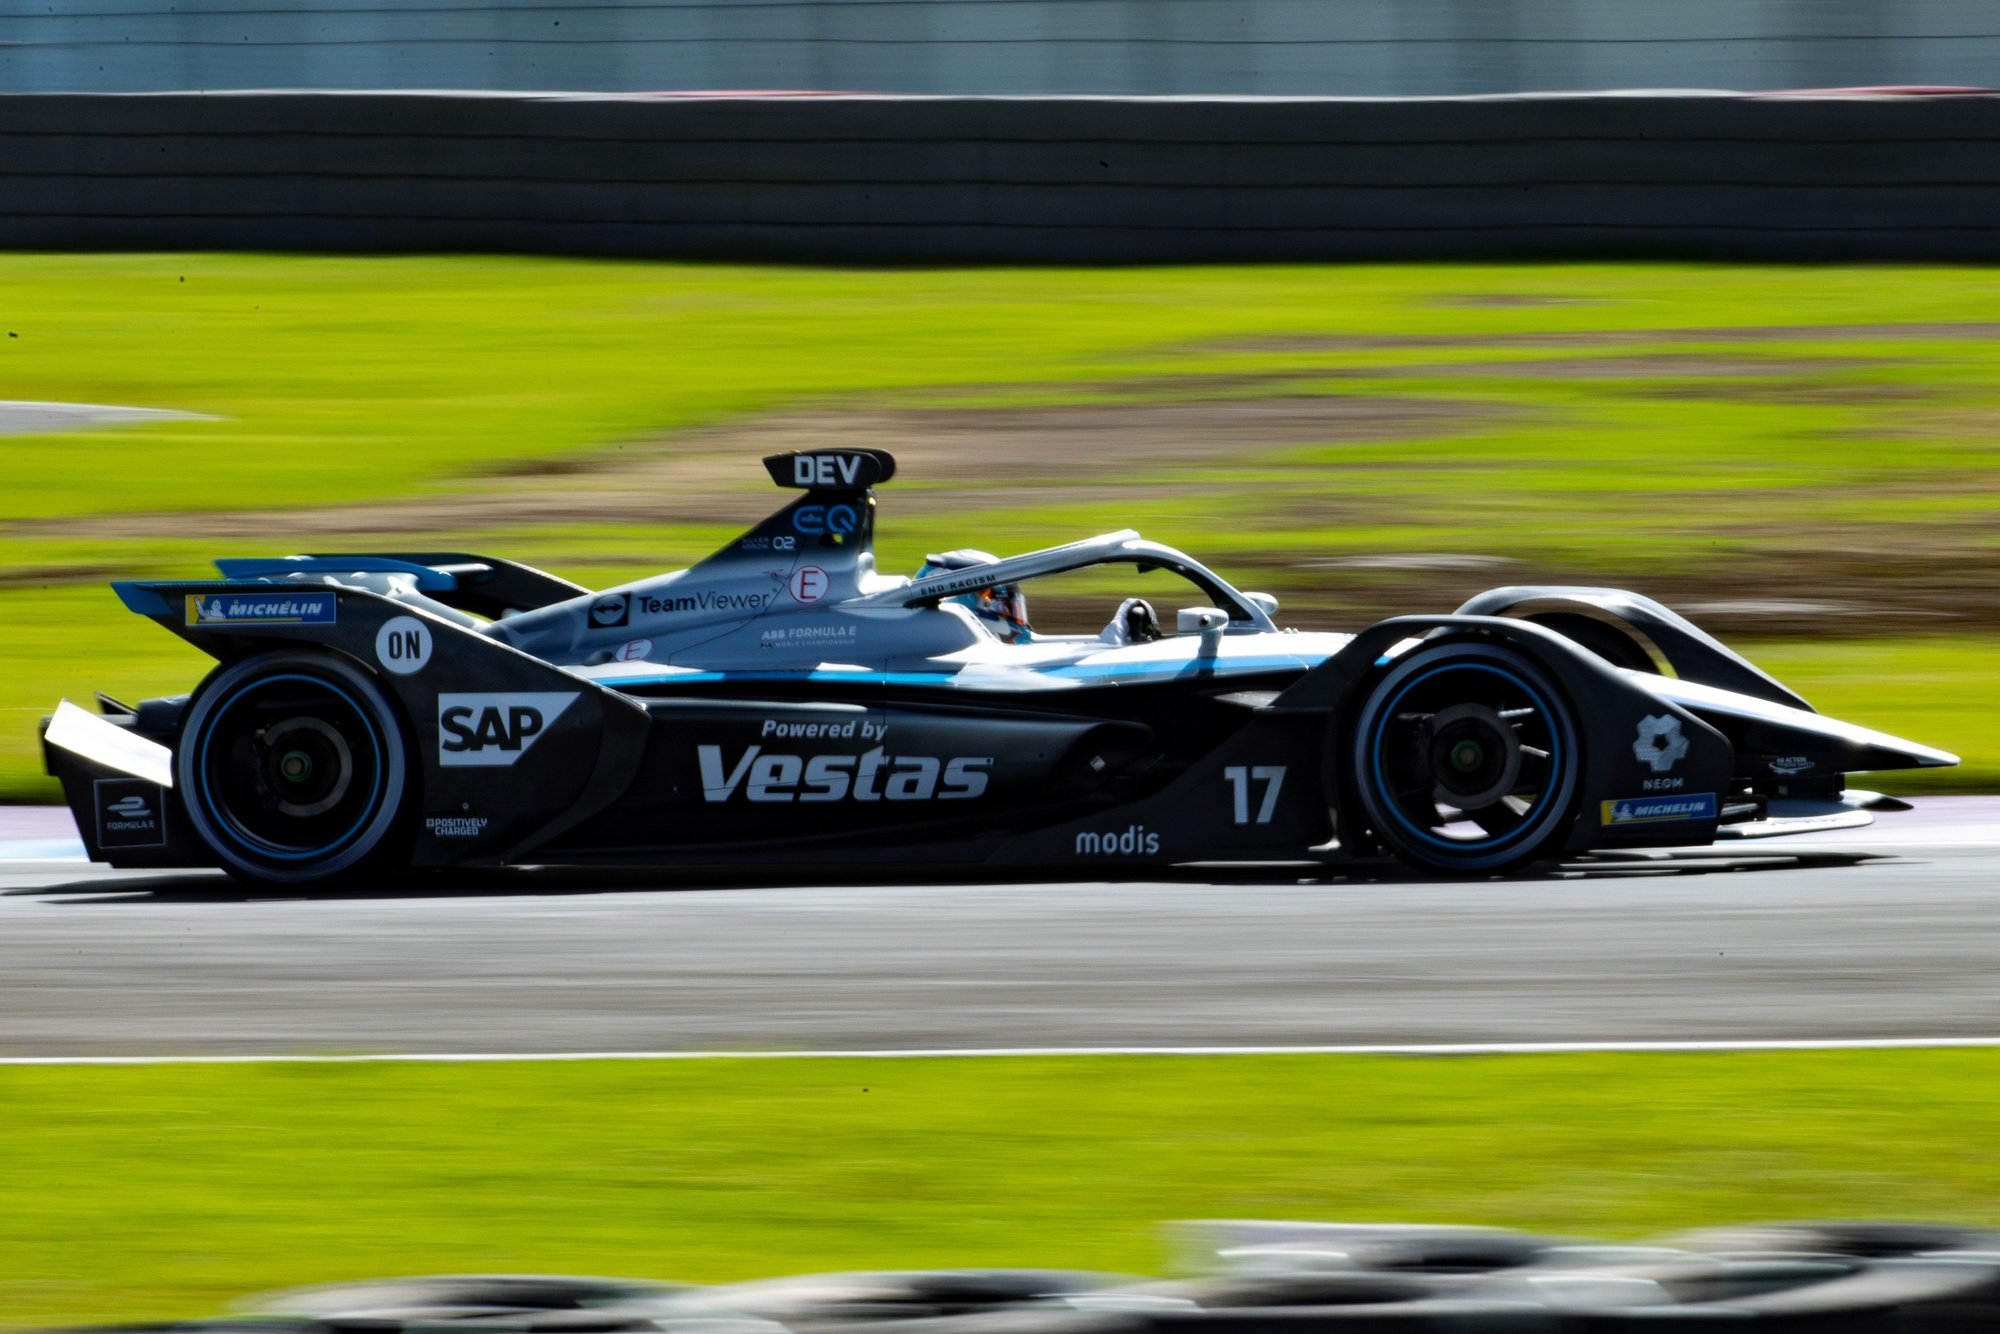 epa09286653 Nyck de Vries, of the Mercedes-Benz EQ Formula E Team, in action during the Formula E championship, in the state from Puebla, Mexico, 19 June 2021.  EPA/Carlos Ramirez